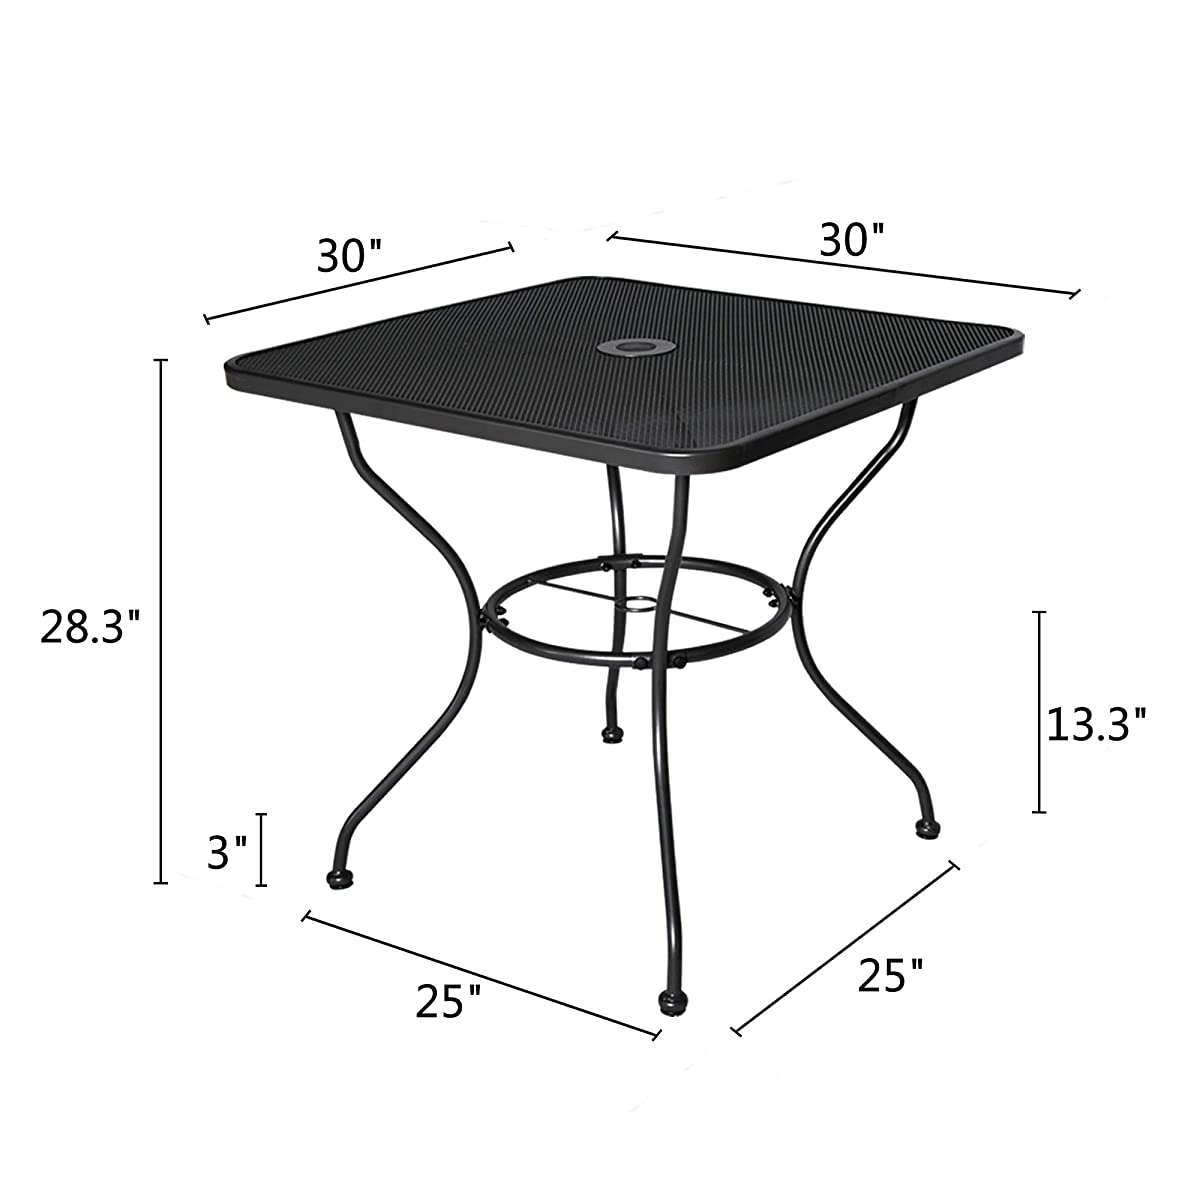 """Homevibes 30"""" Outdoor Patio Dining Table Top Bistro Table Top Umbrella Stand Square Deck Furniture Garden Table Powder-Coated Steel Frame, Ash Black"""